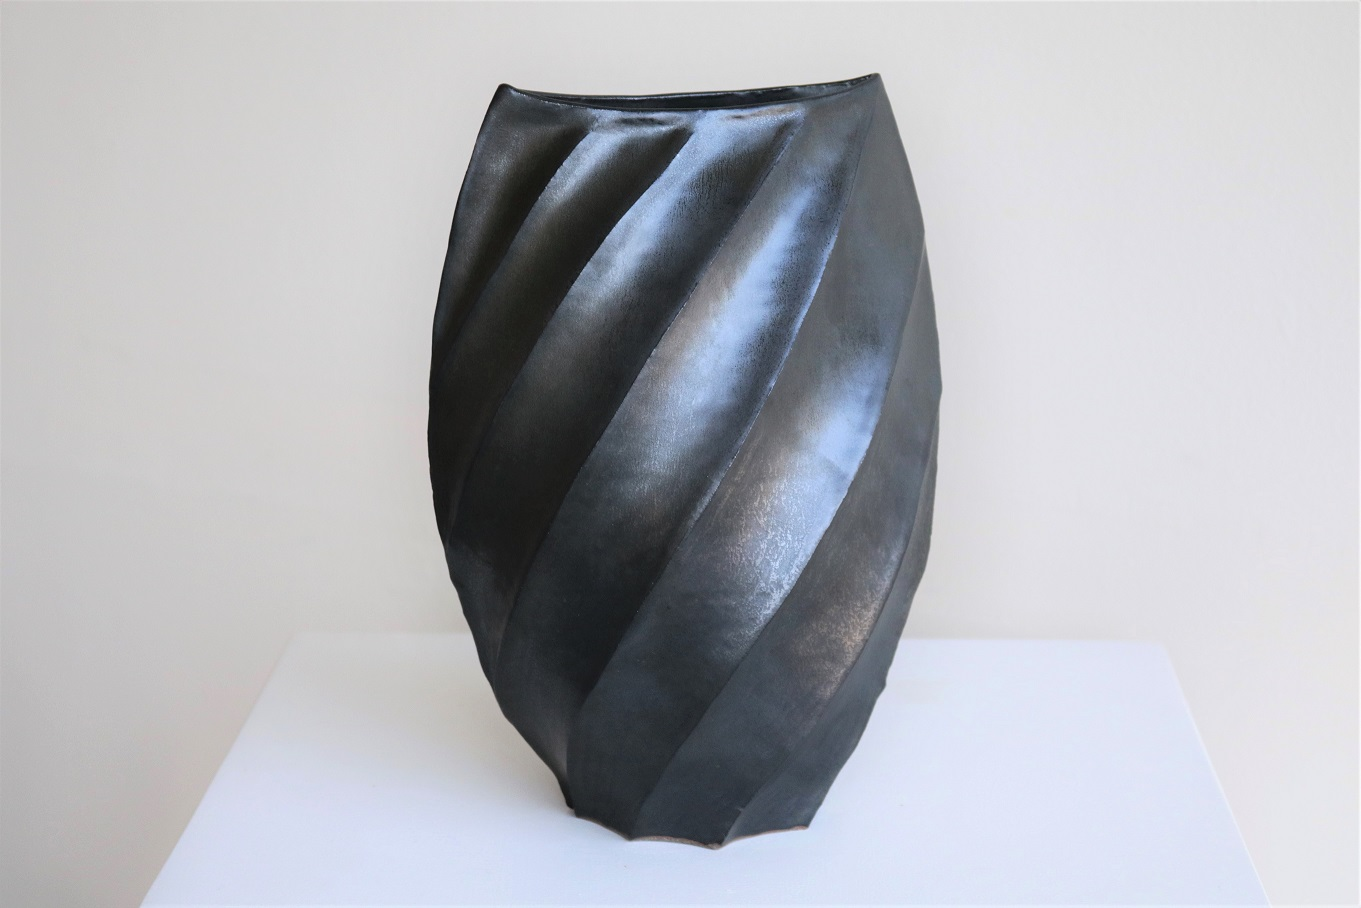 Terunobu Hirata,  'Dark Ridge' Henko,  stoneware, black matt glaze, H28 x W20cm, 2017 AVAILABLE